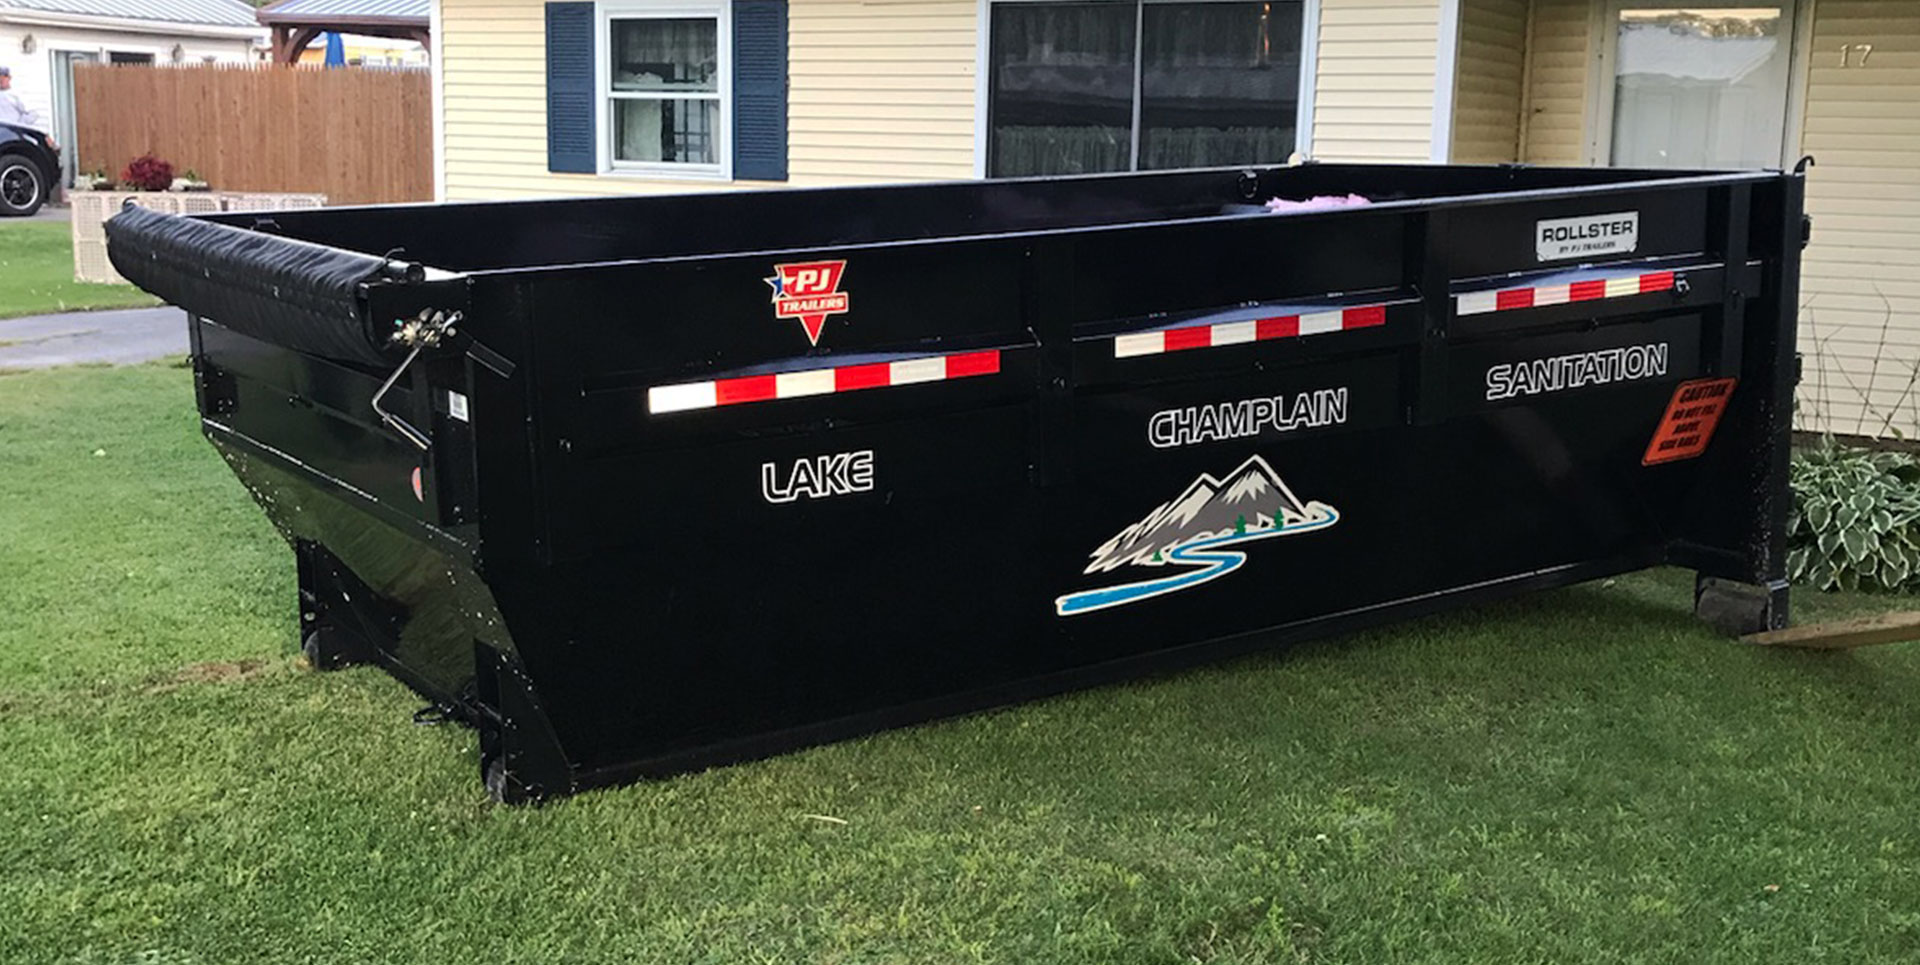 dumpster-rentals-in-Plattsburgh-NY_Roll-Off-Dumpster-Rental-Service